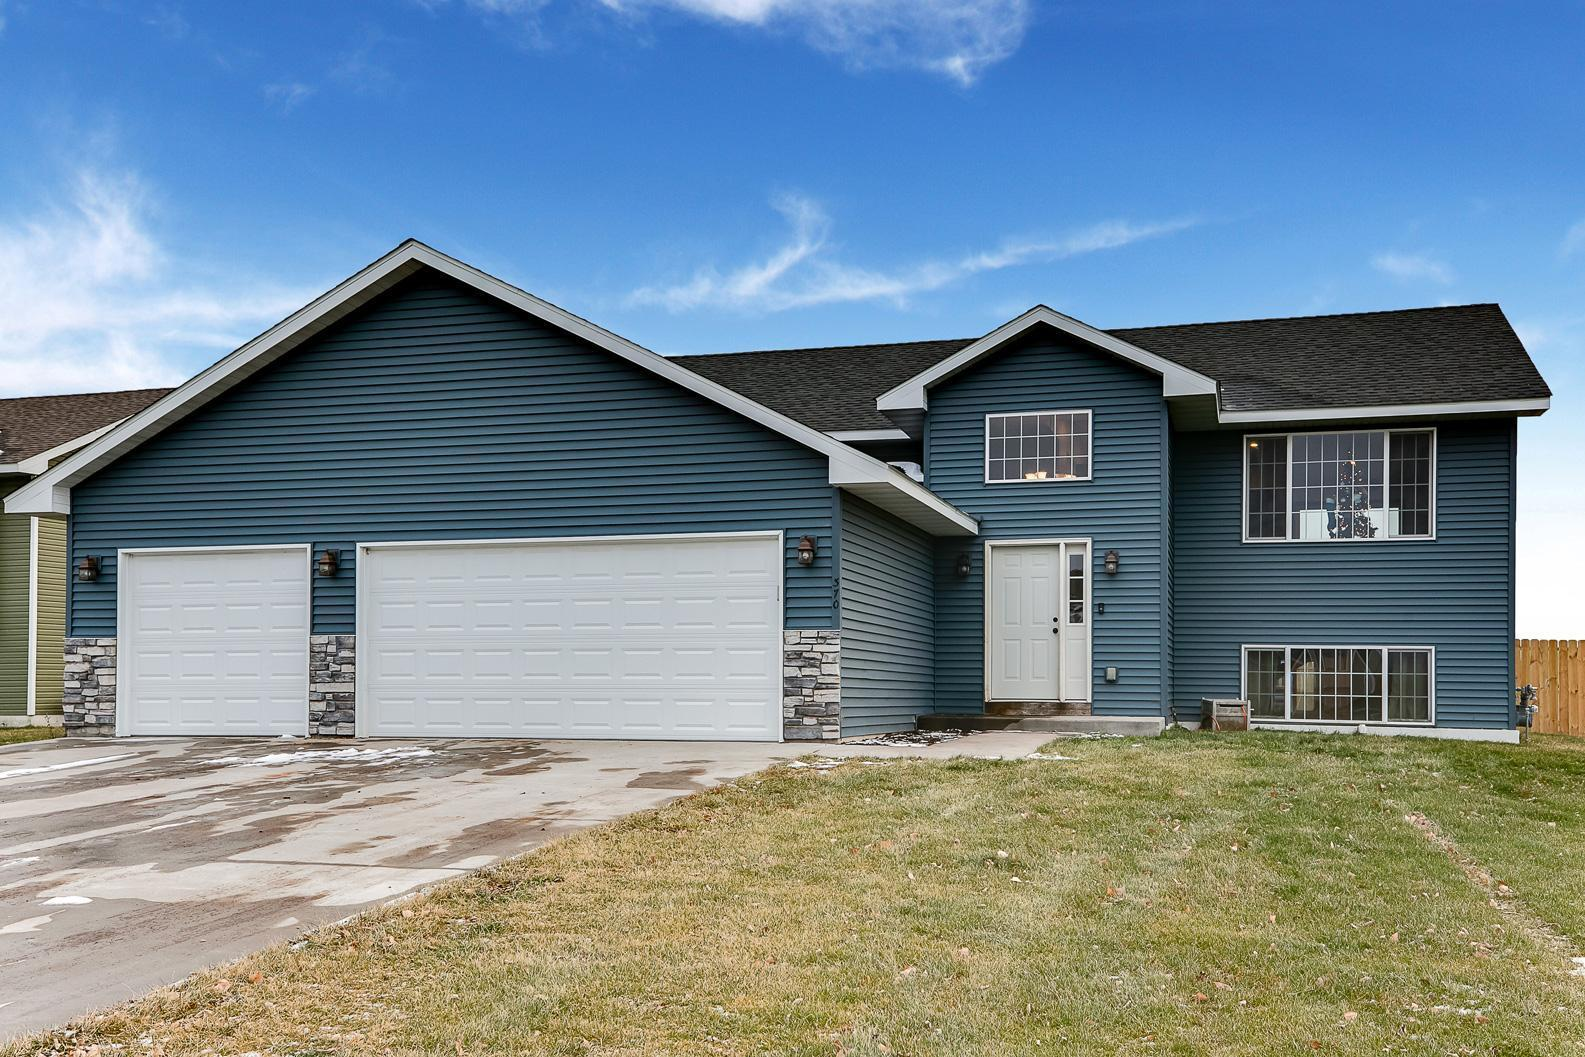 370 Fawn Meadows Property Photo - Pine City, MN real estate listing